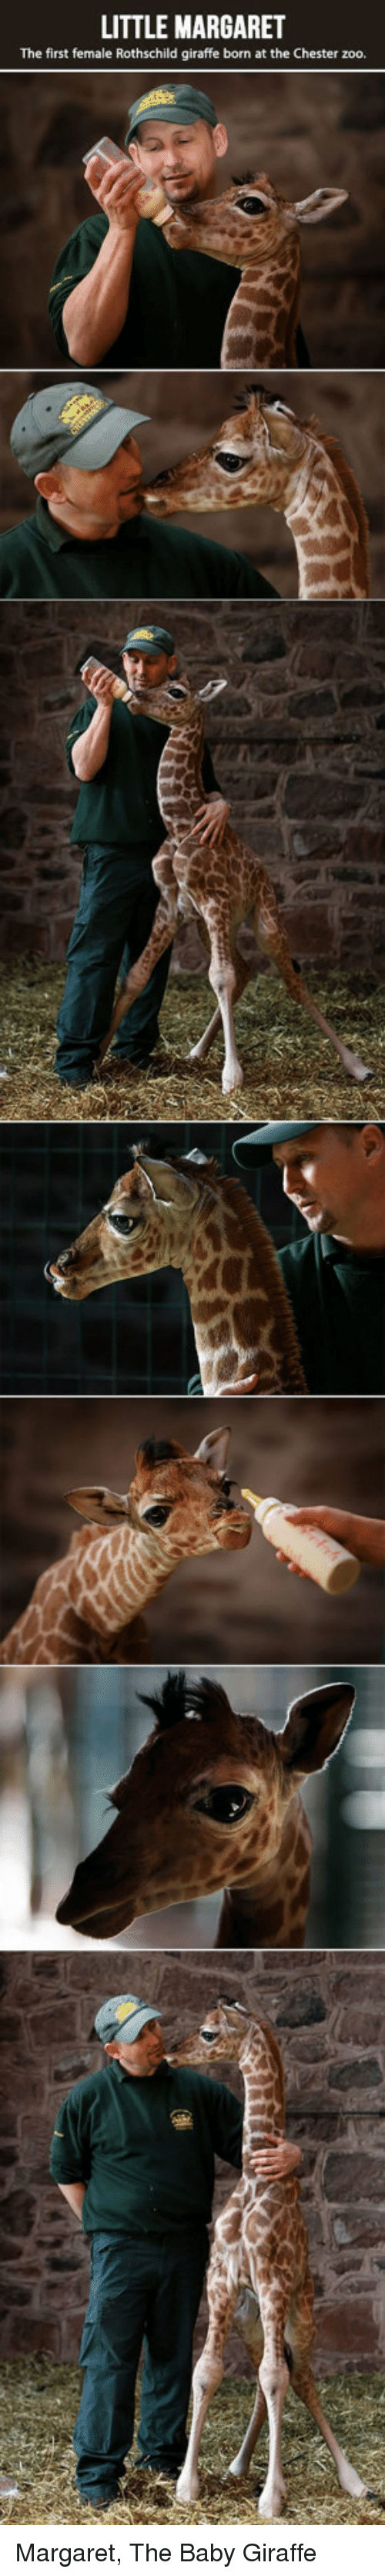 baby giraffe: LITTLE MARGARET  The first female Rothschild giraffe born at the Chester zoo. <p>Margaret, The Baby Giraffe</p>